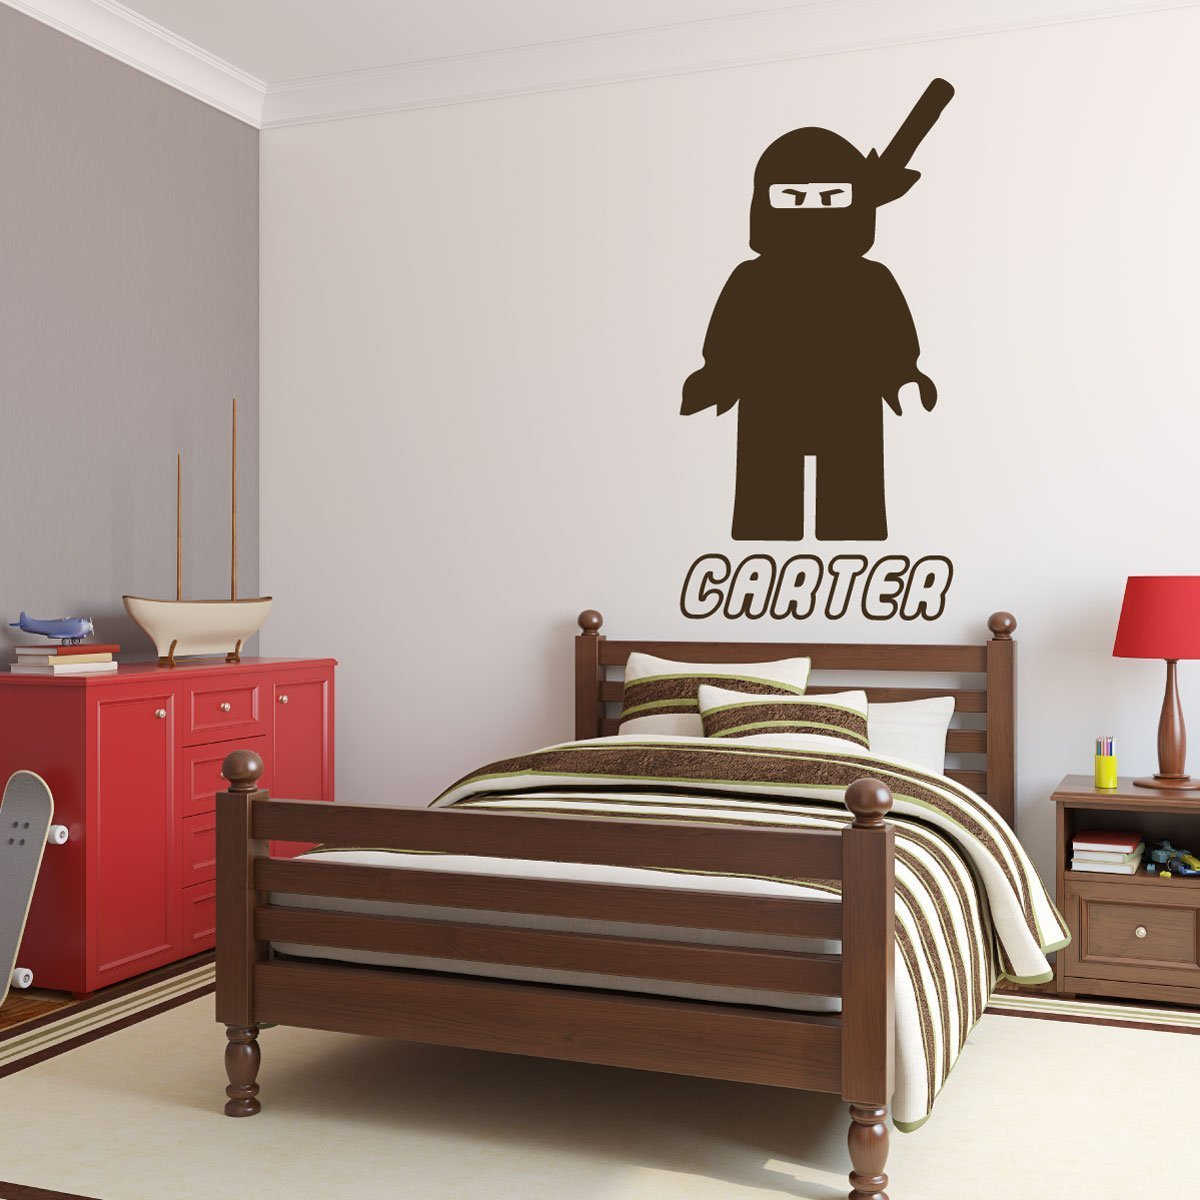 Personalized Wall Decals   Lego Ninjago Samurai With Name Below